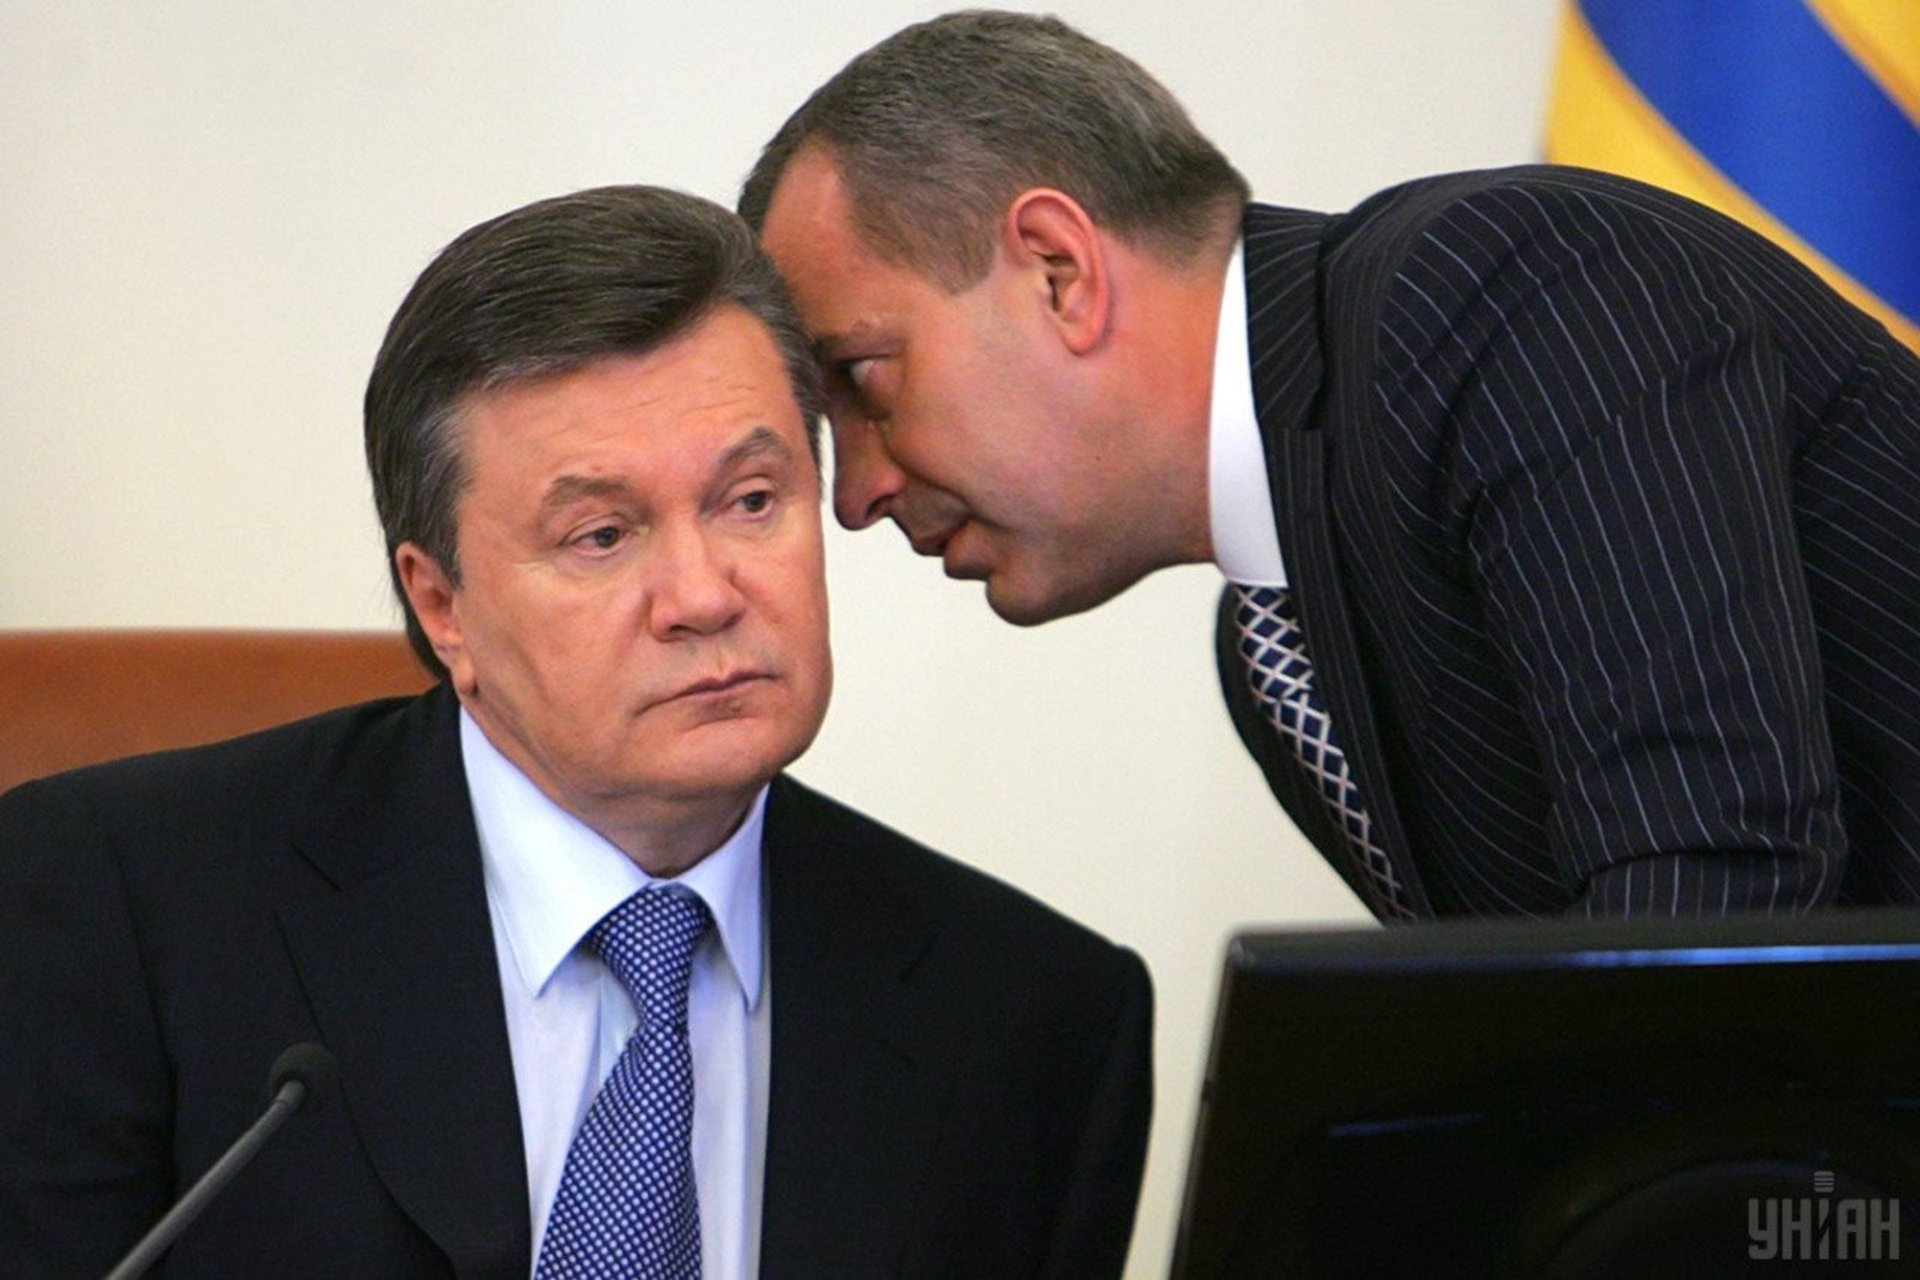 In Ukraine, preparing for a trial of the former leadership of the country 07/26/2015 6